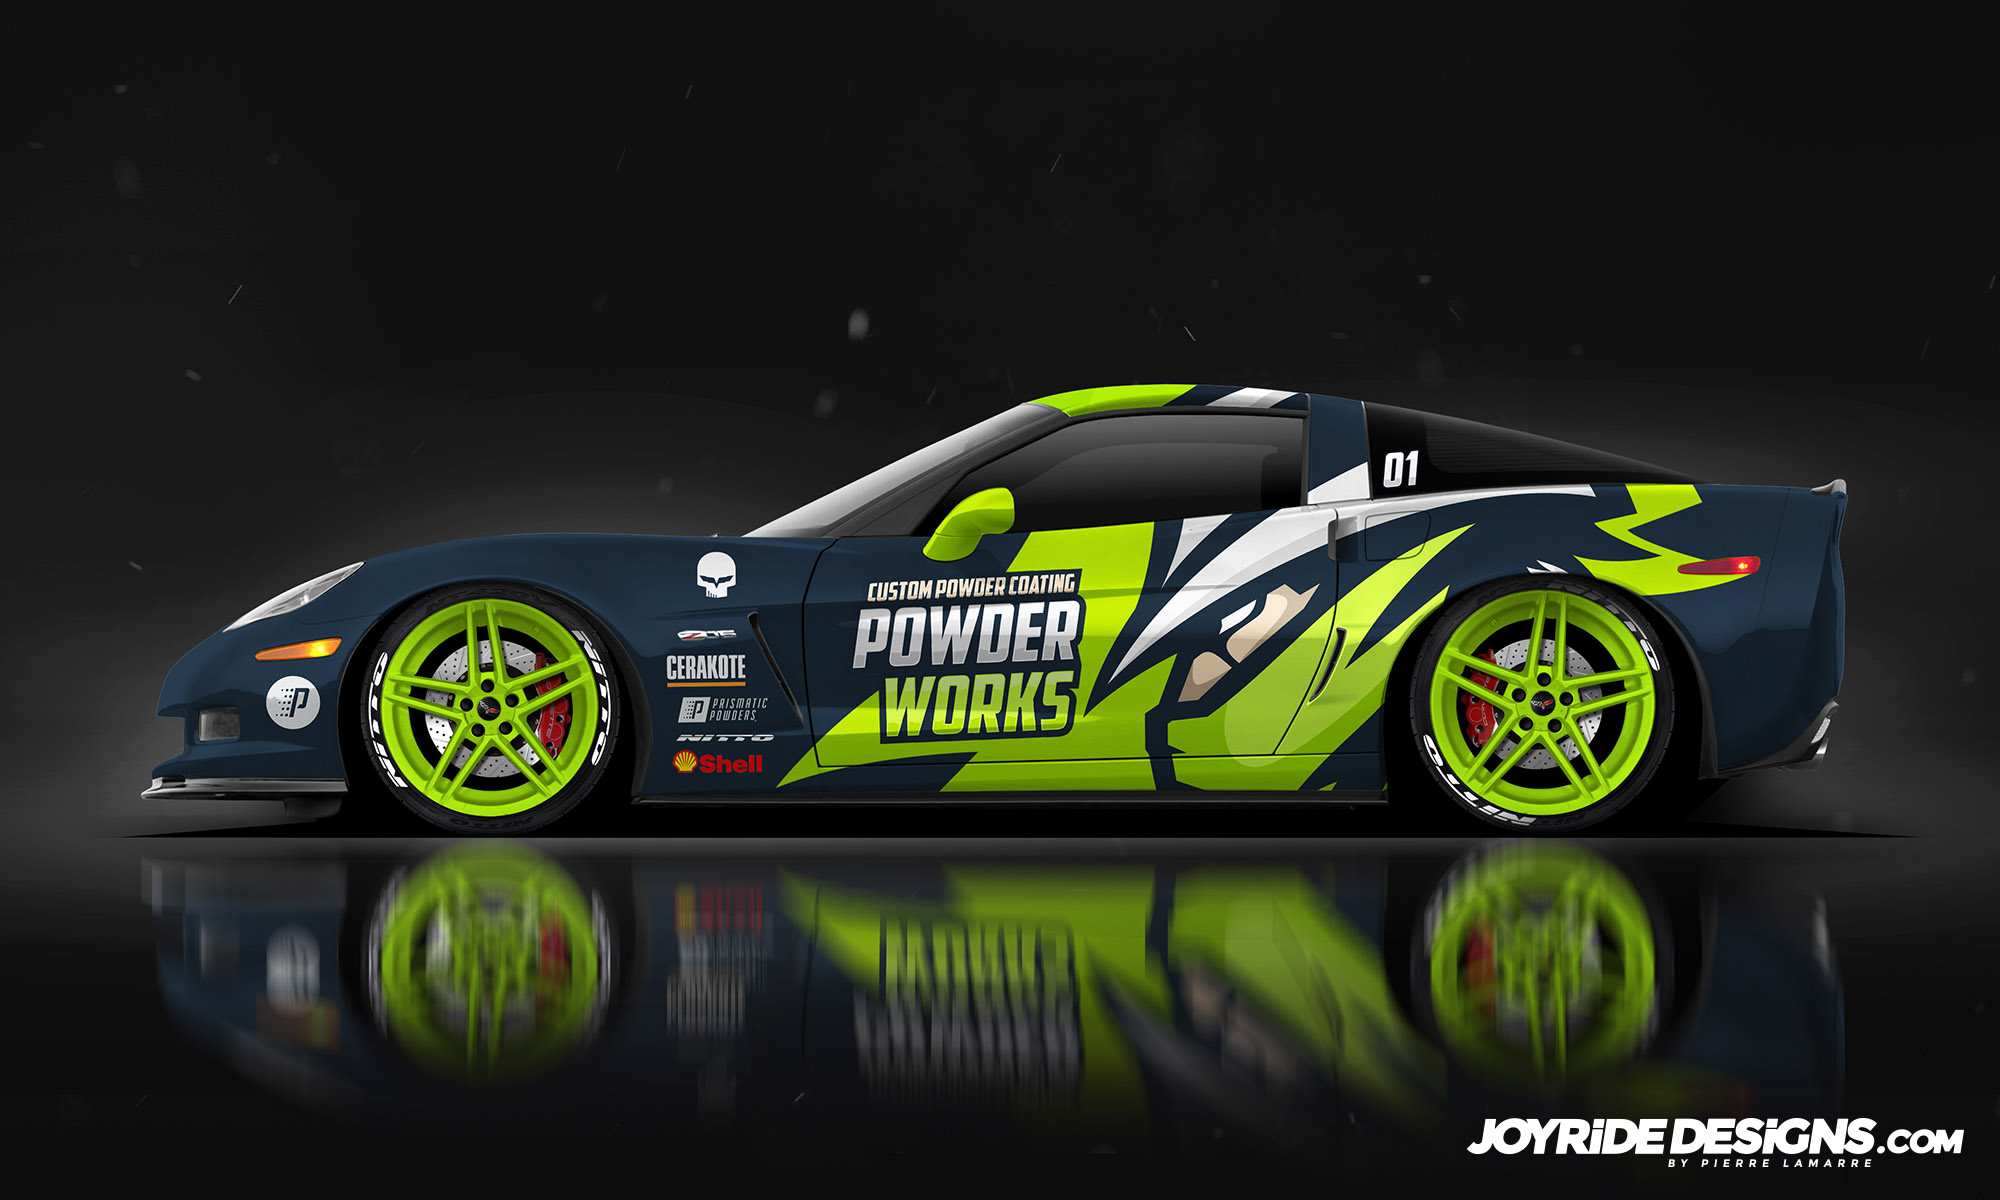 CORVETTE C6 Z06 POWDER WORKS JOYRIDE WRAP DESIGN SIDE